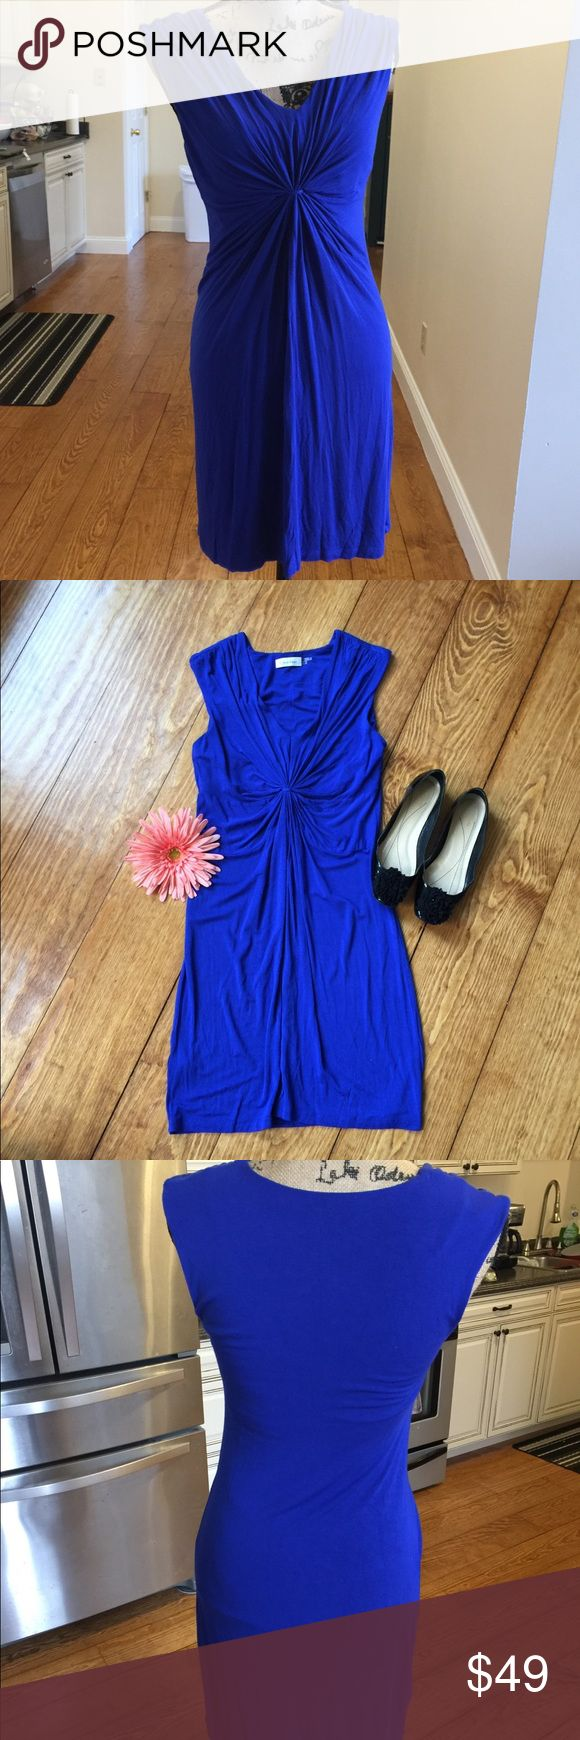 Calvin Klein Dress This is a gorgeous electric blue dress! Brand new condition! Thin, light material. Definitely for a summer night!  Size 6P.  Smoke free home.  Excellent brand new condition.  Same or next day shipping.  Offers welcome! Calvin Klein Dresses